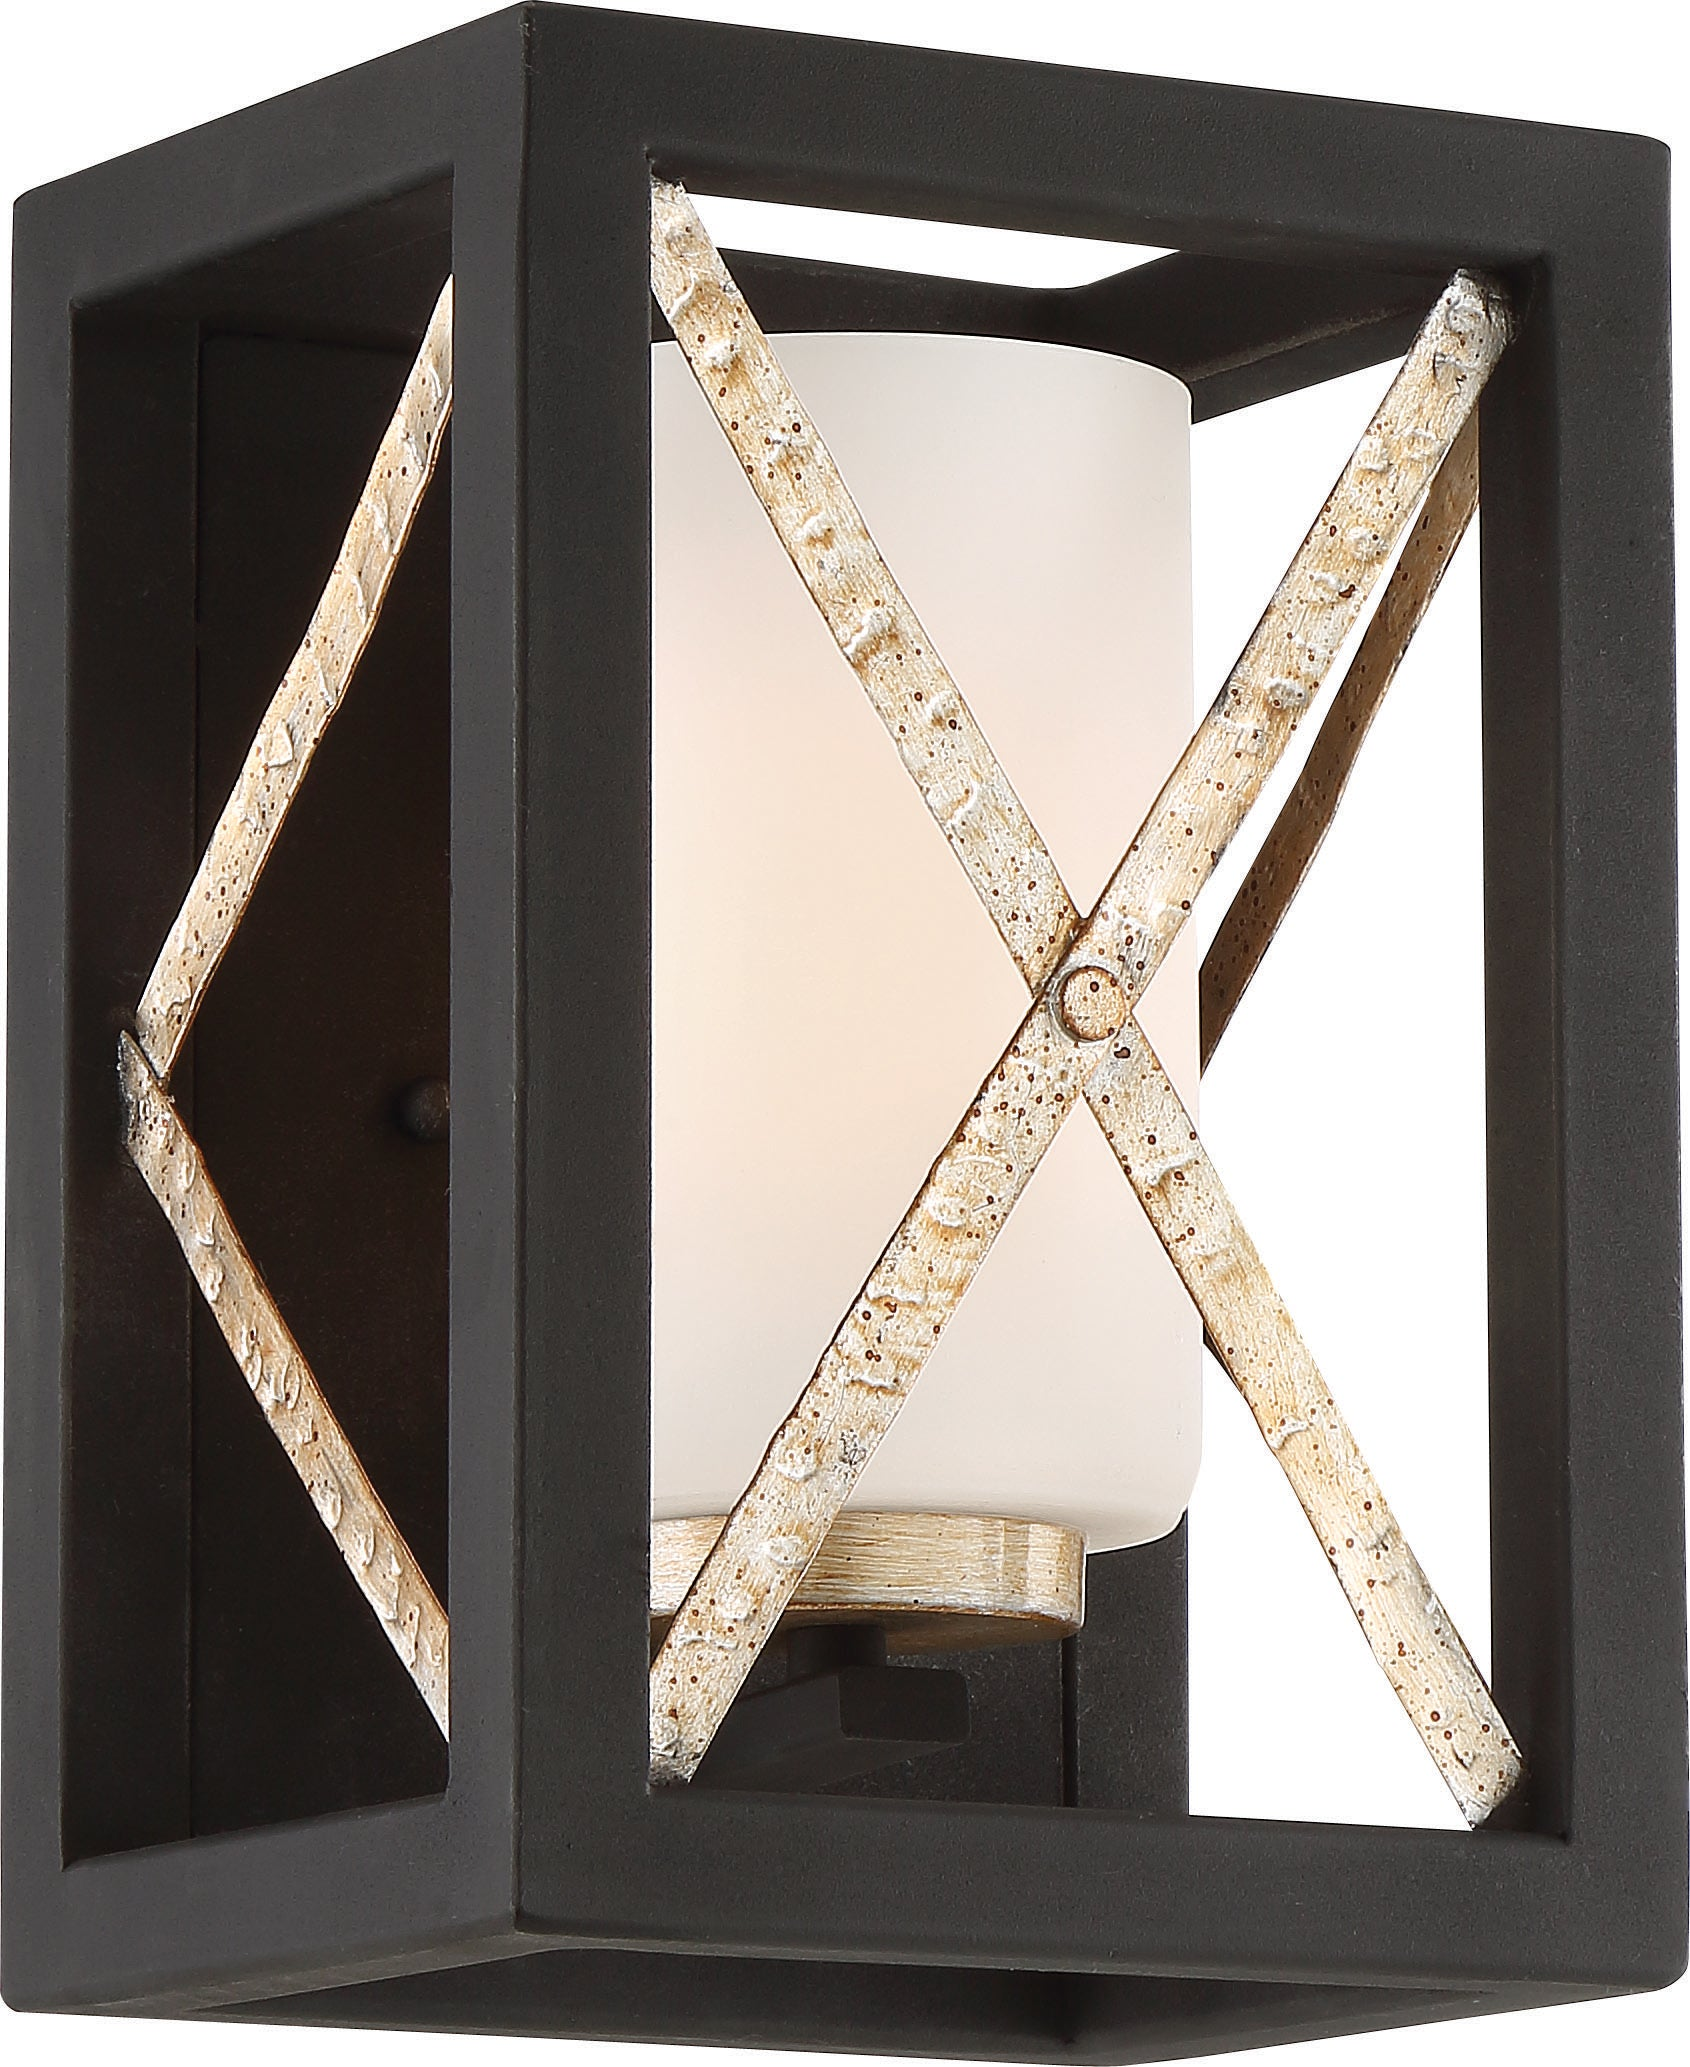 Boxer 1-Light Wall Sconce in Matte Black / Antique Silver Accents Finish